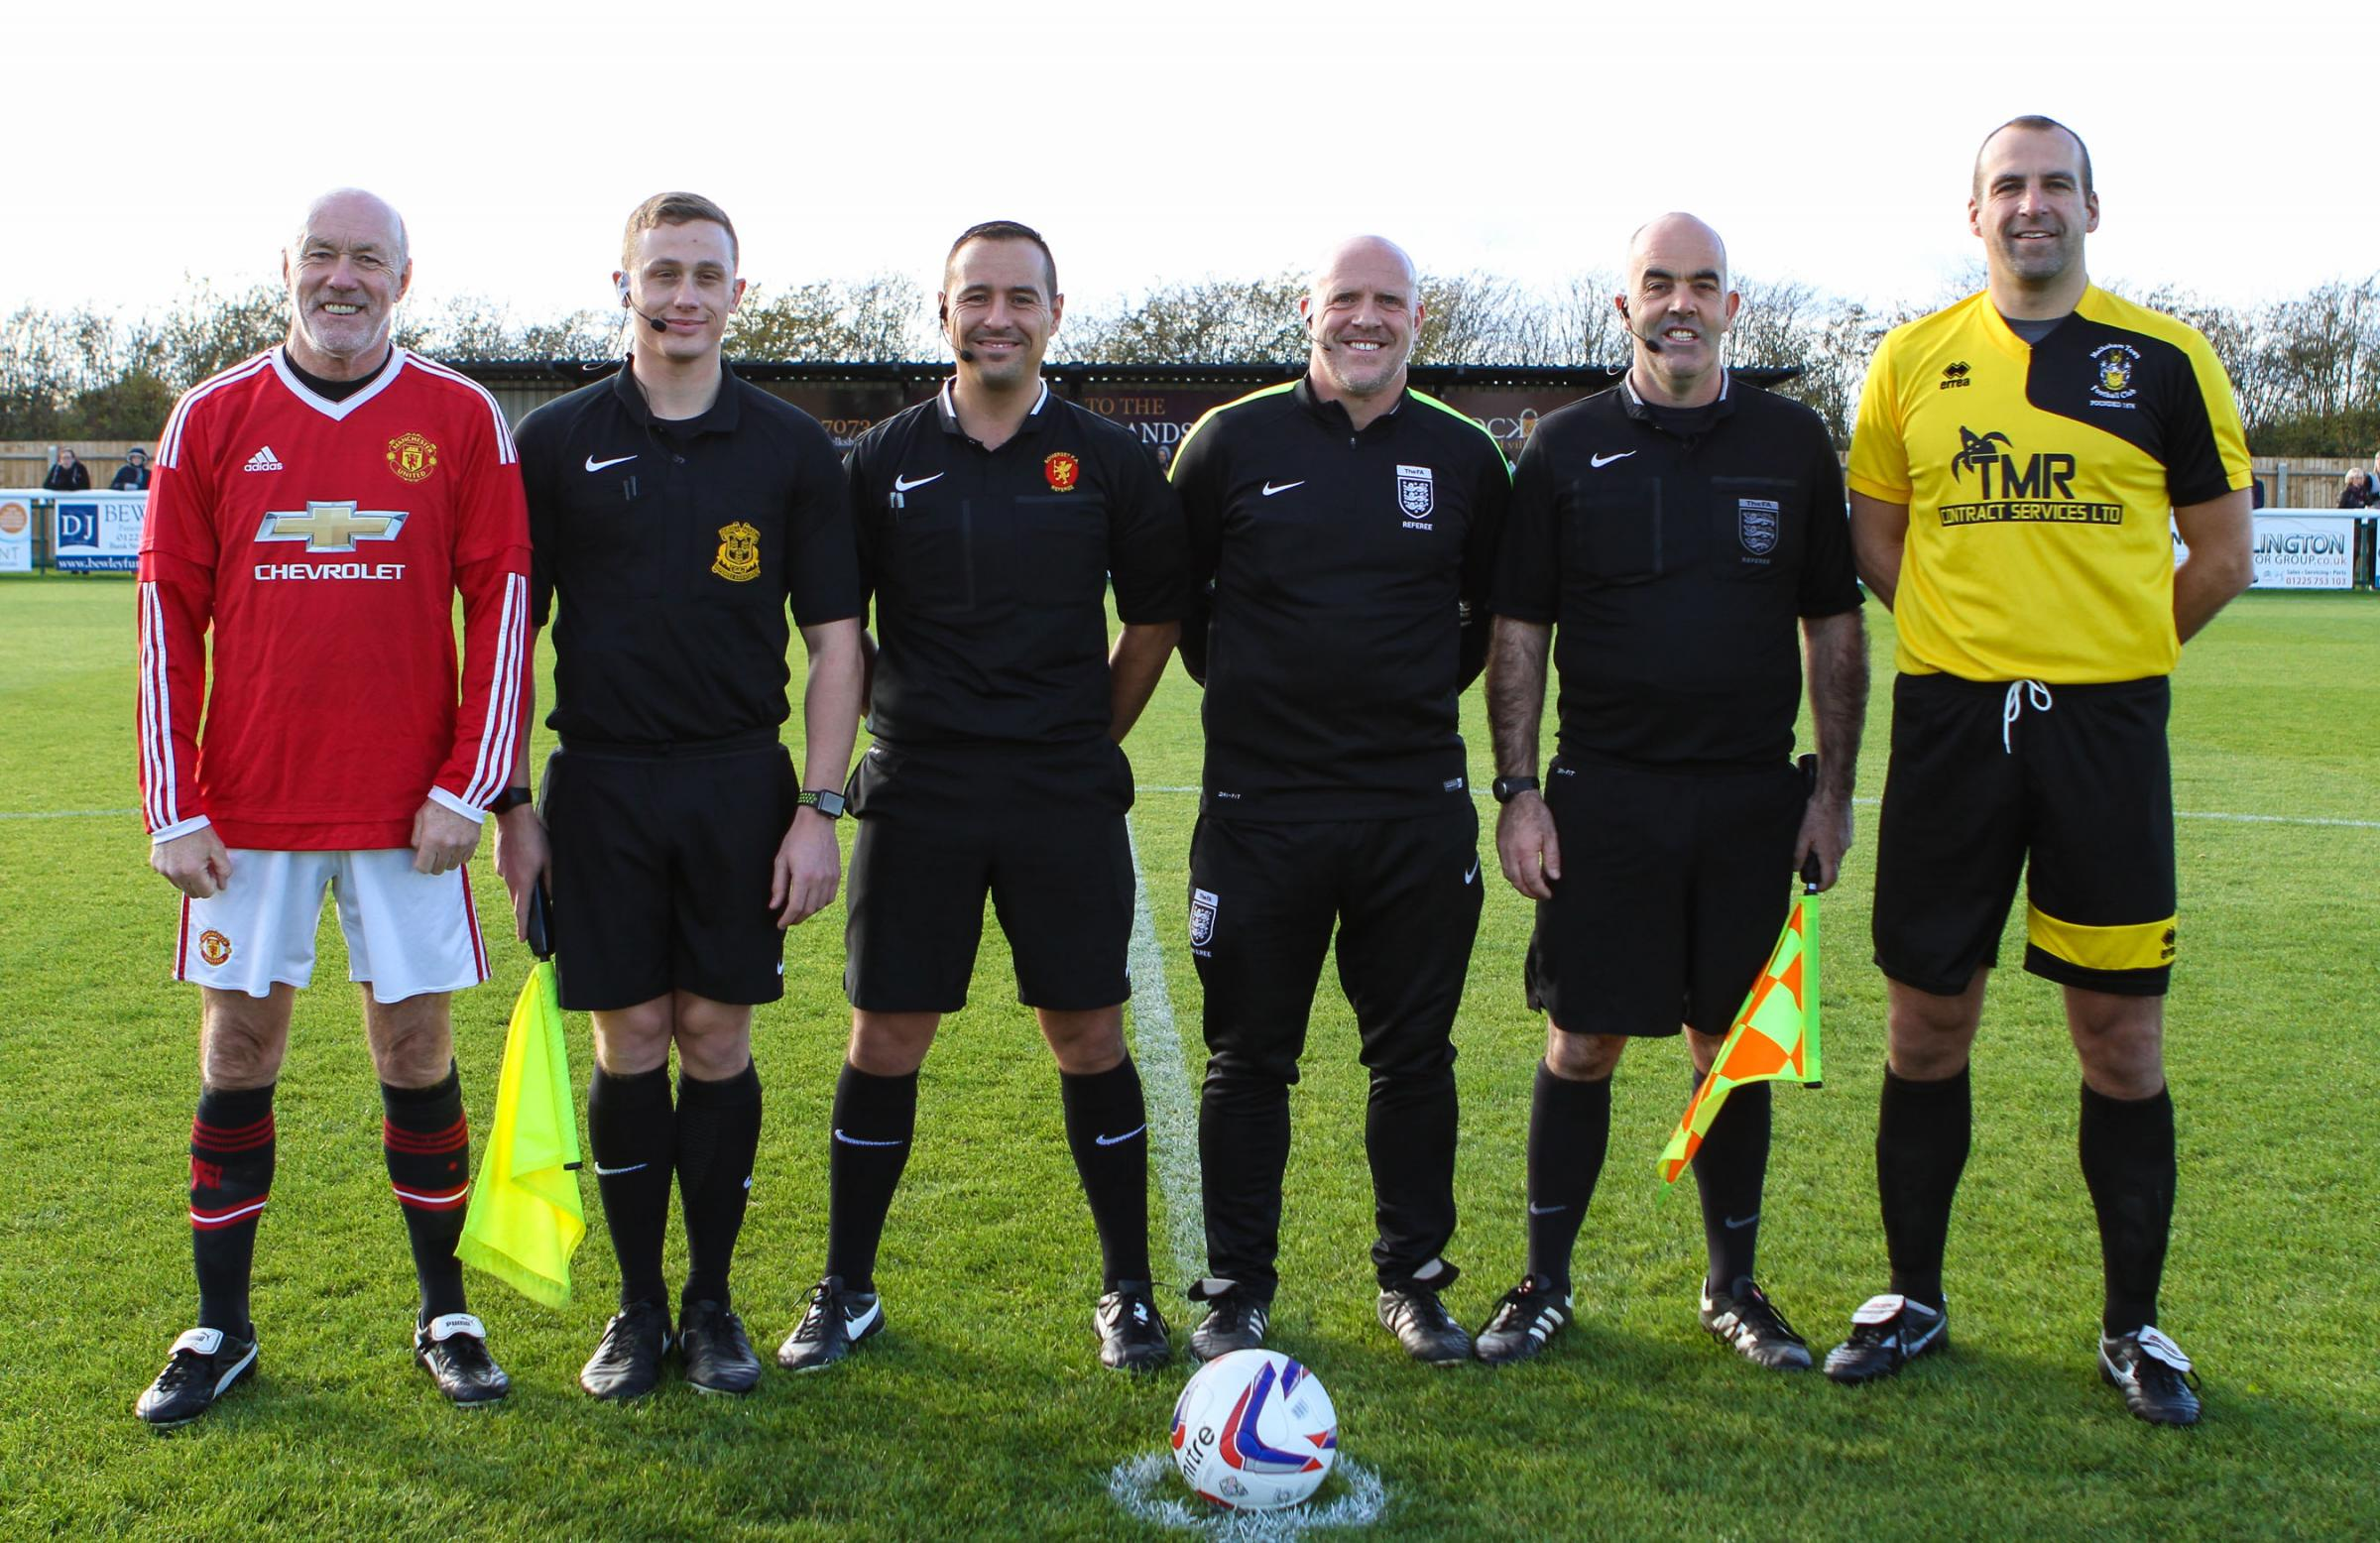 Manchester United's Sammy McIlroy and the Select XI's Matthew Bond , with the match officials before Sunday's match (Pictures: JOHN CUTHBERTSON)